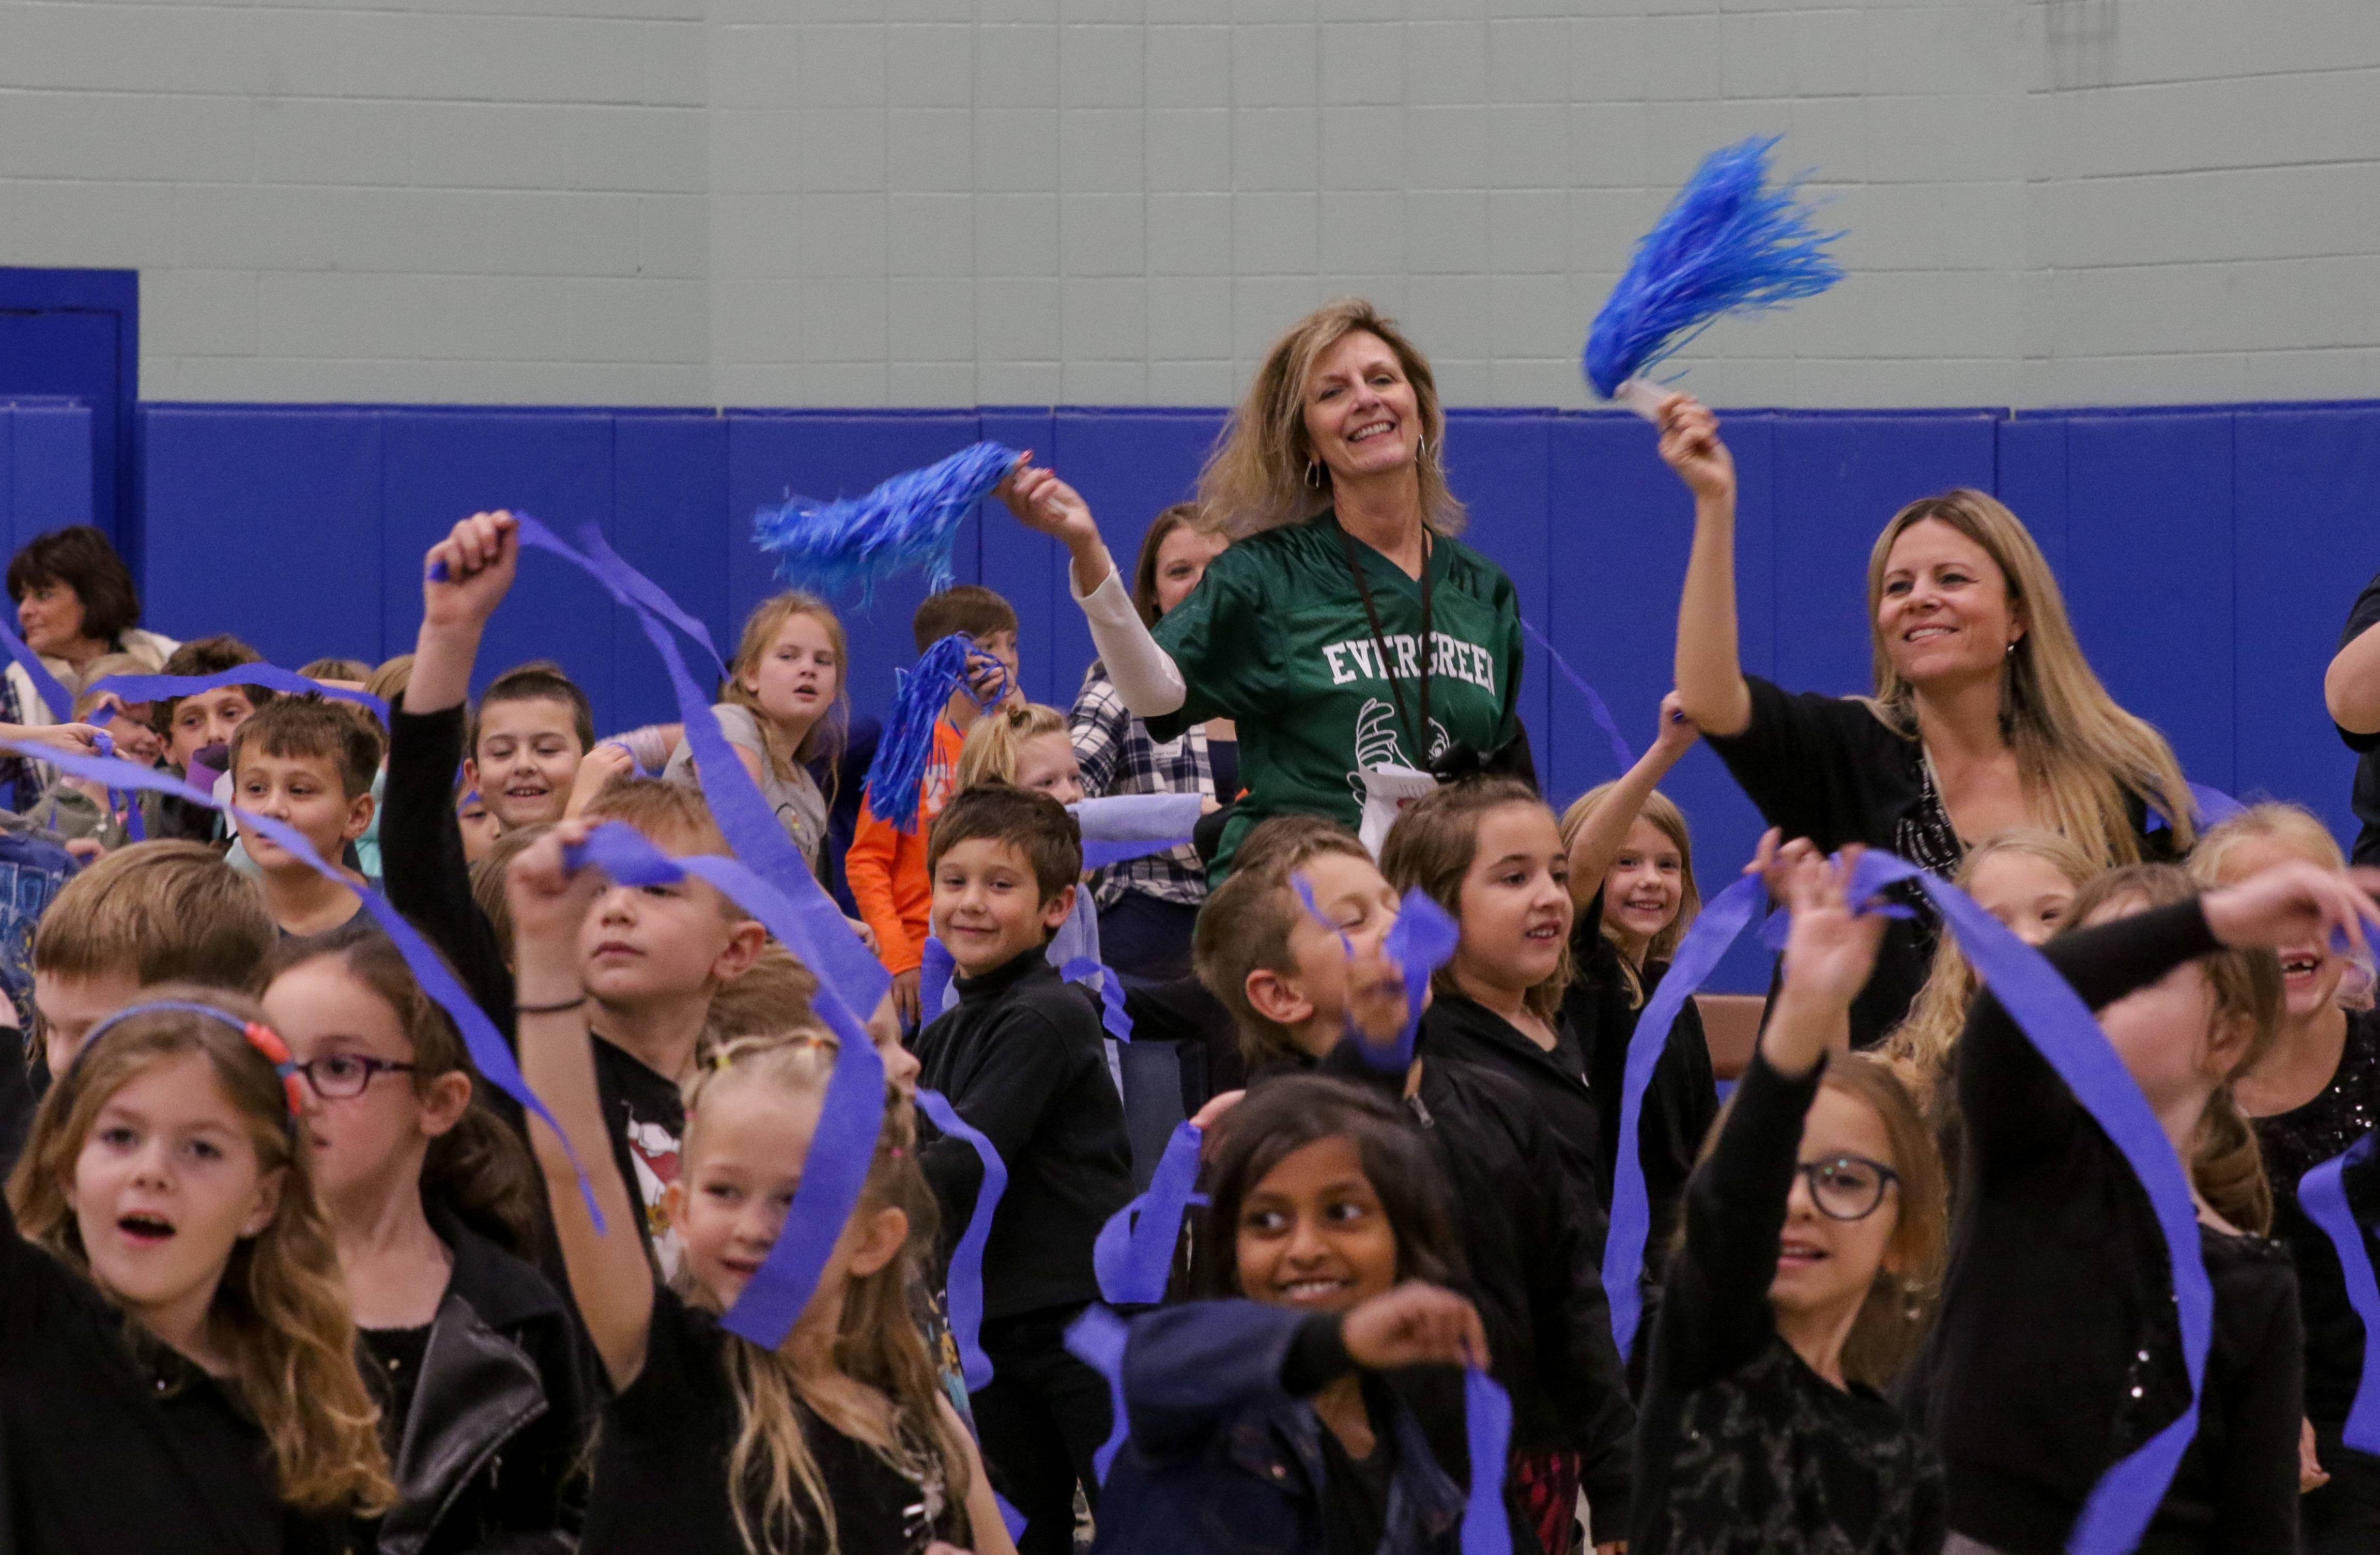 Evergreen Principal Laura Pfanenstiel, center, waves blue pom poms with students as a nod to the 2018 National Blue Ribbon Award.